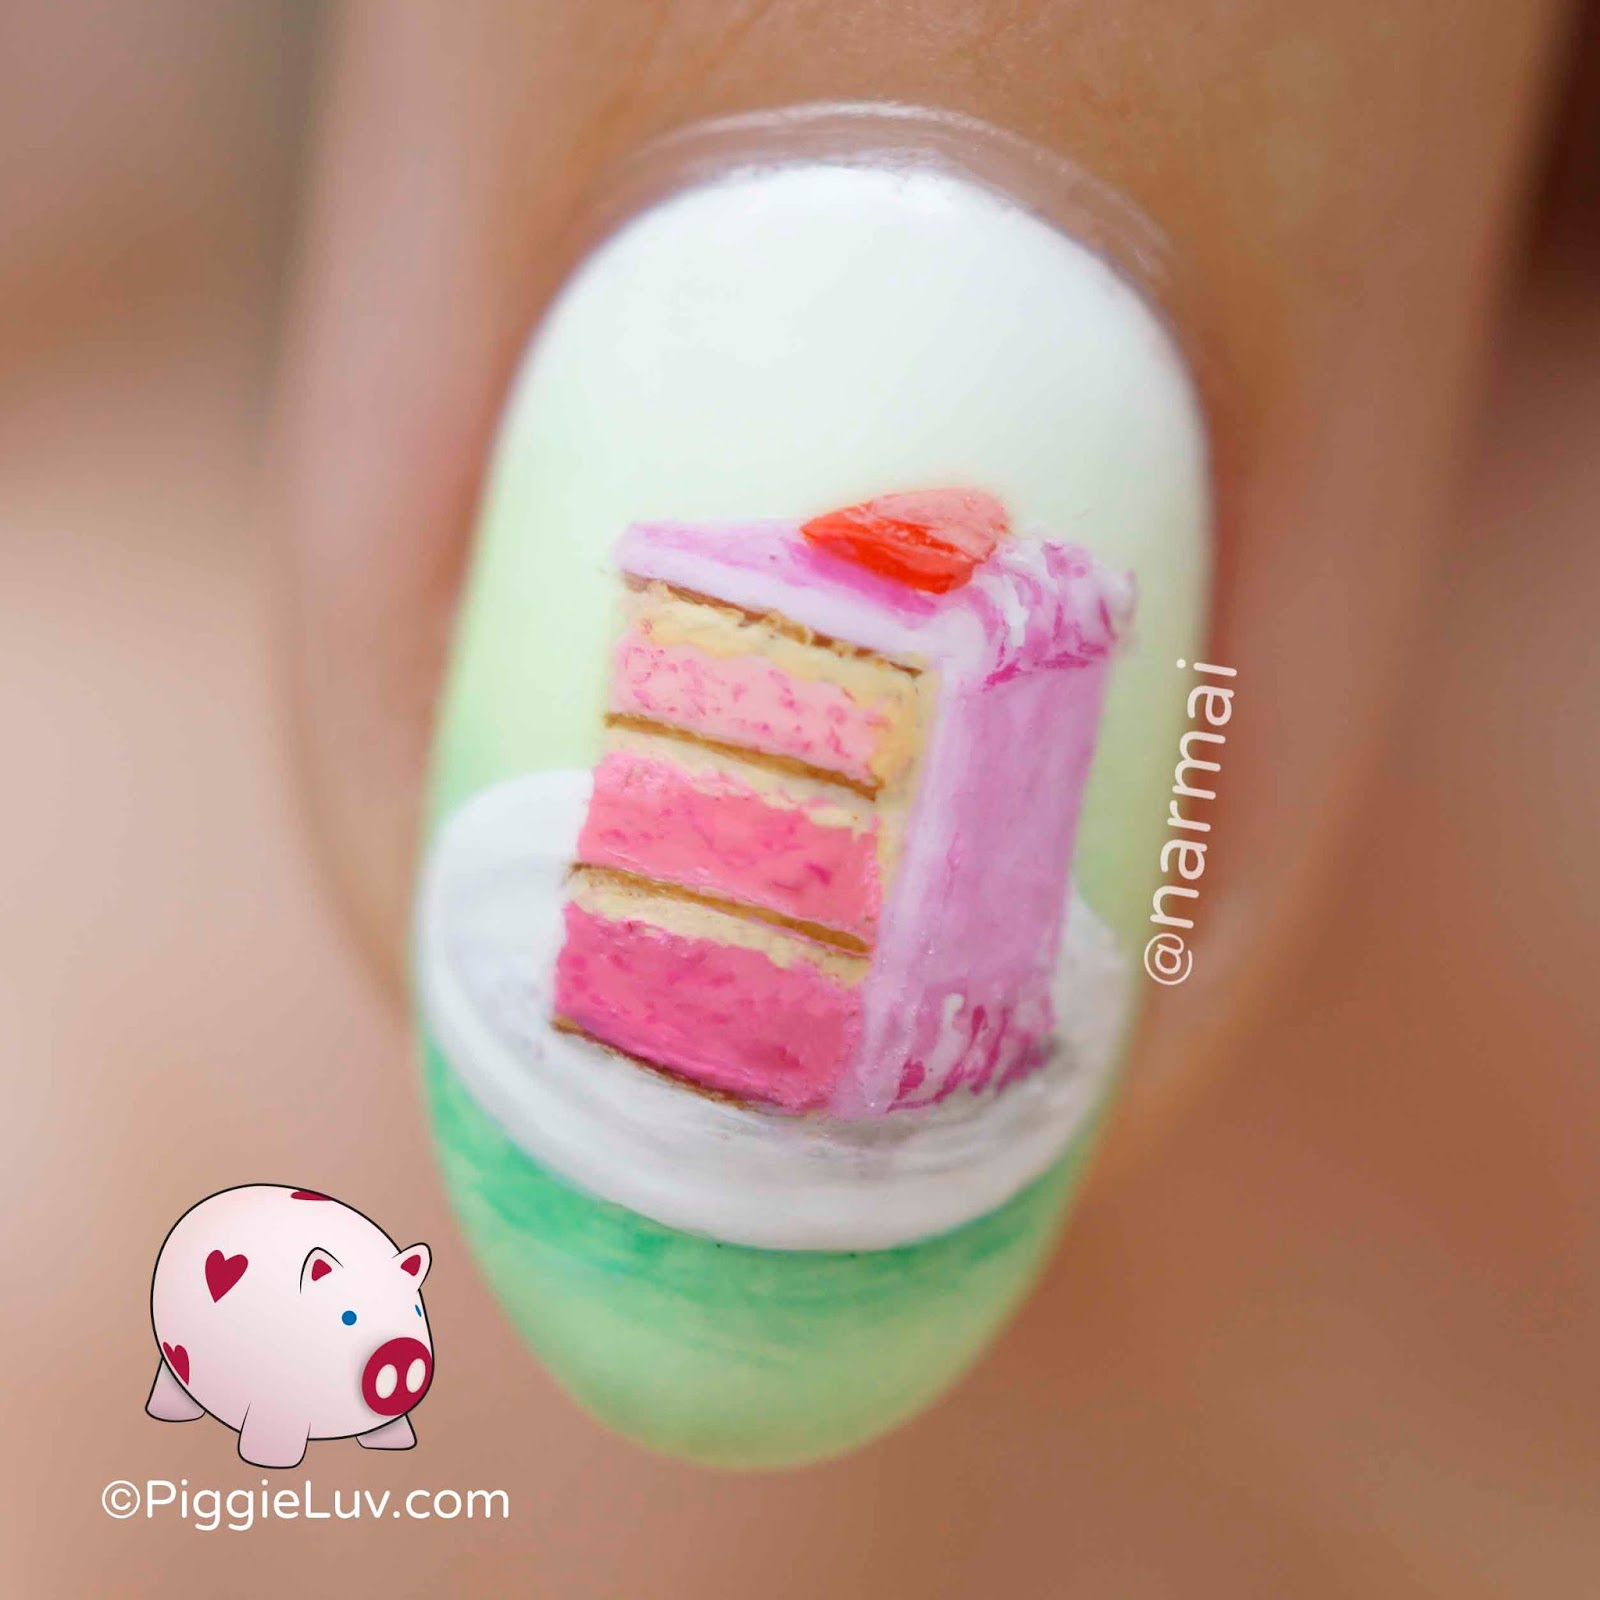 Piggieluv piece of cake nail art i made a gradient with moomoos signatures seafoam daisy bells of ireland and glisten glow wedding gown white its a very soft subtle gradient because prinsesfo Gallery